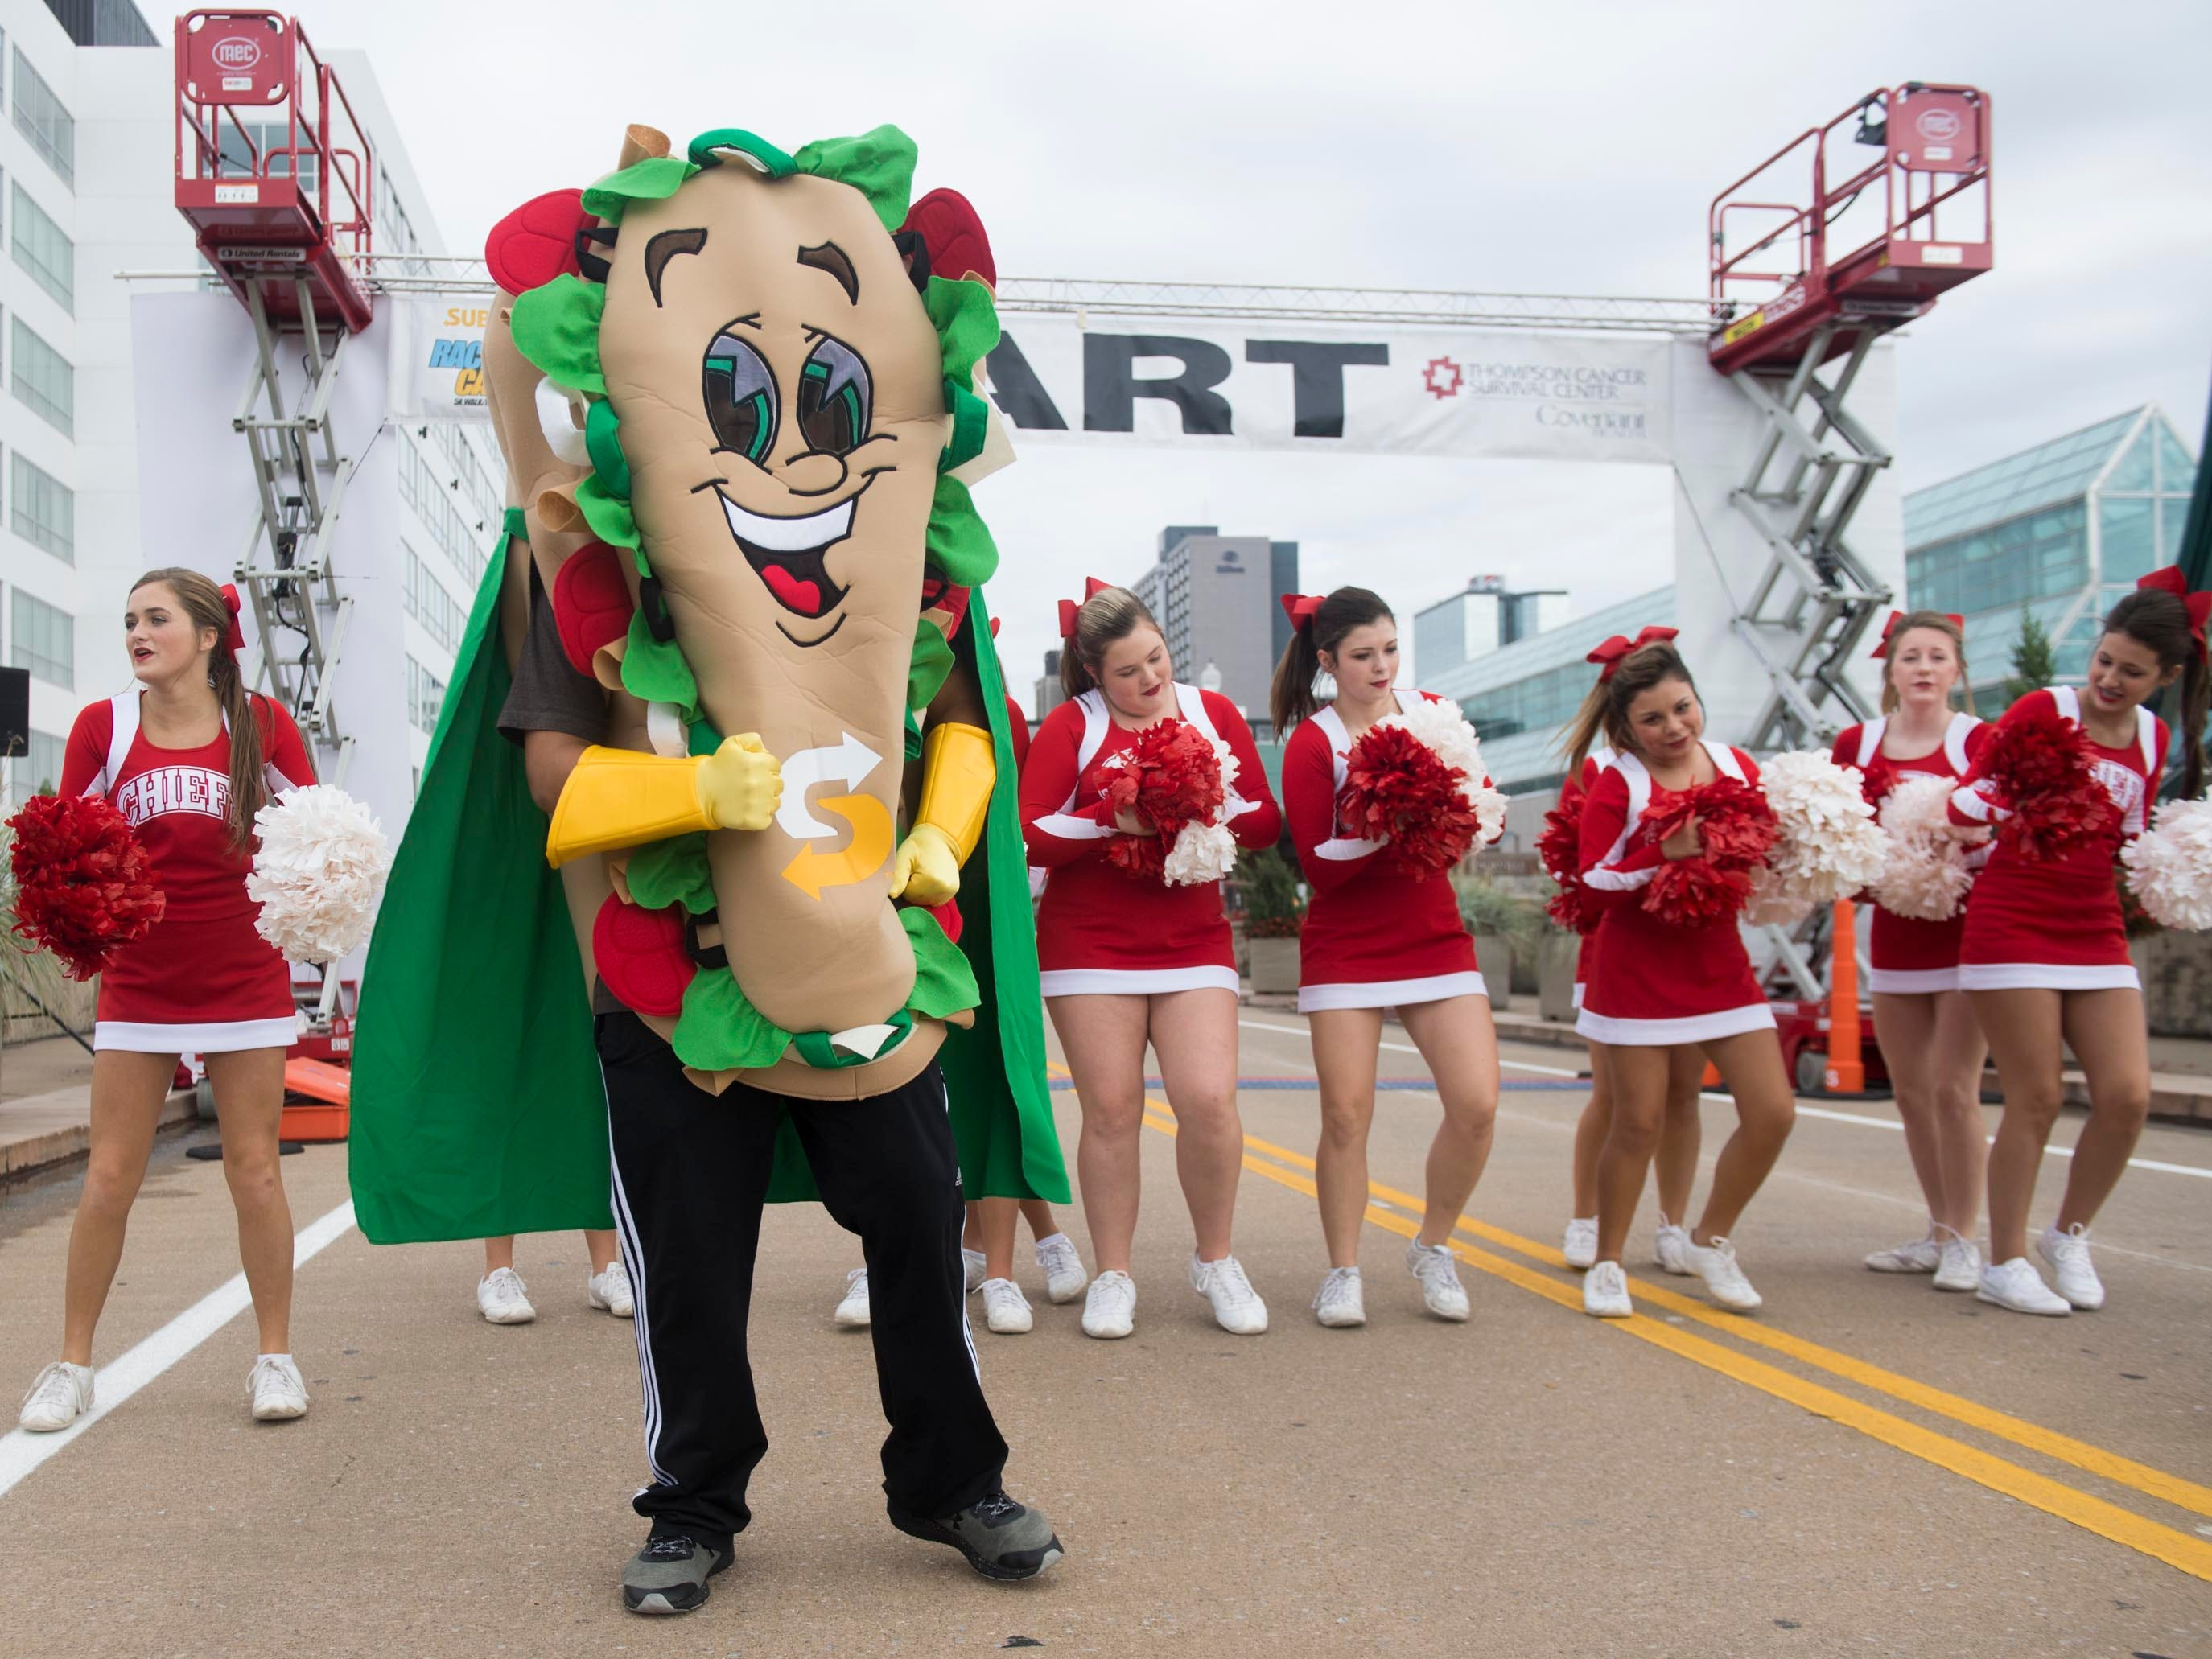 A Subway mascot and cheerleaders from Sequoyah High School in Madisonville cheer on the runners as they line up at the starting line for Covenant Health's Subway Race Against Cancer at World's Fair Park on Sunday, October 14, 2018.